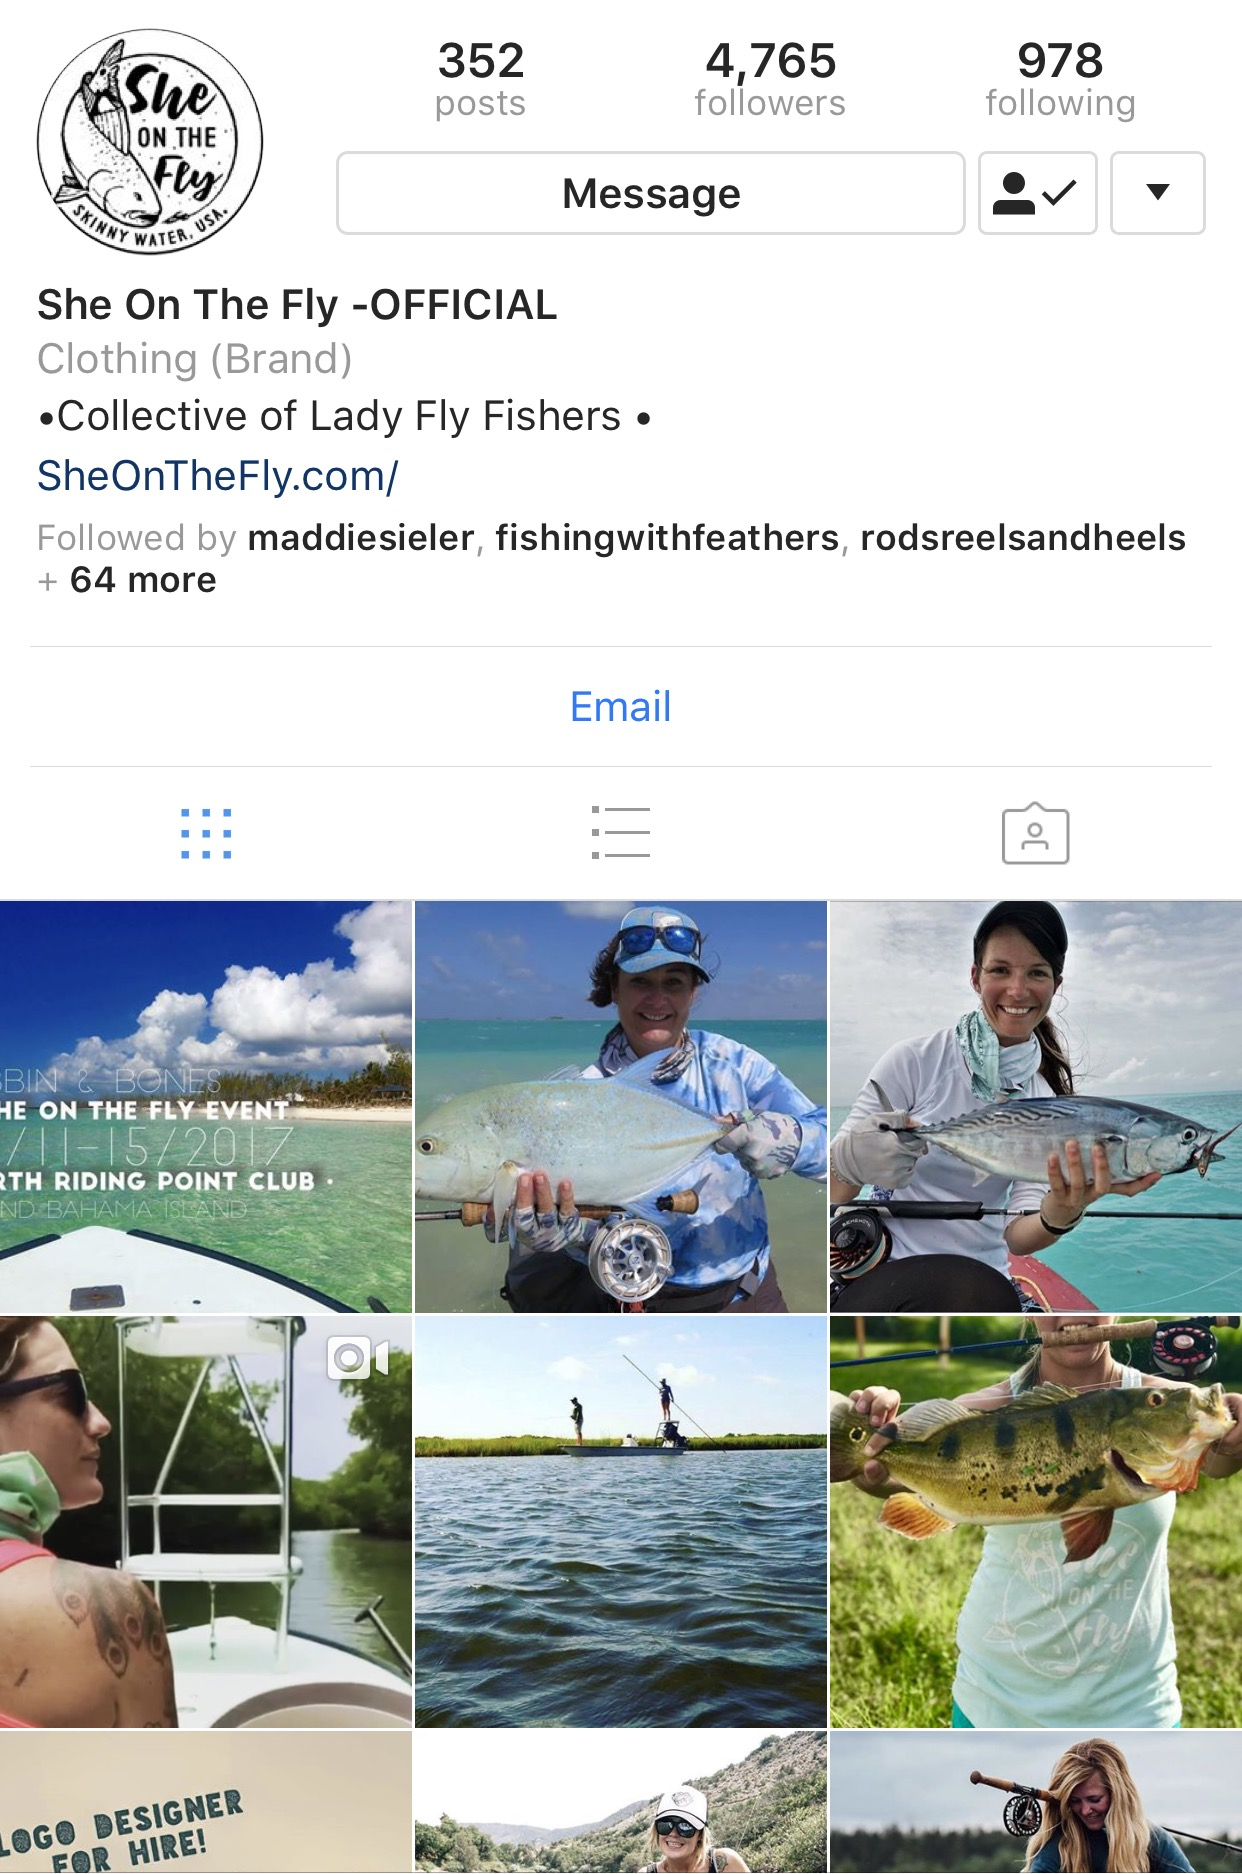 - Welcome to the official She On The Fly website. Our company was born in the winter months of 2016. The brand started as an idea with the intention of sharing, creating, and collaborating with other female anglers from around the globe. By 2017 we experienced some amazing growth and changes.Our mission will always be to uplift women, inspire them to learn more about the sport, from novice to expert. Over time our image and intention has taken an organic shift that has brought us many opportunities to get our message out there. SOTF now has the opportunity to sponsor charity events with merchandise, collaborate, create and promote with some incredible companies in the industry.